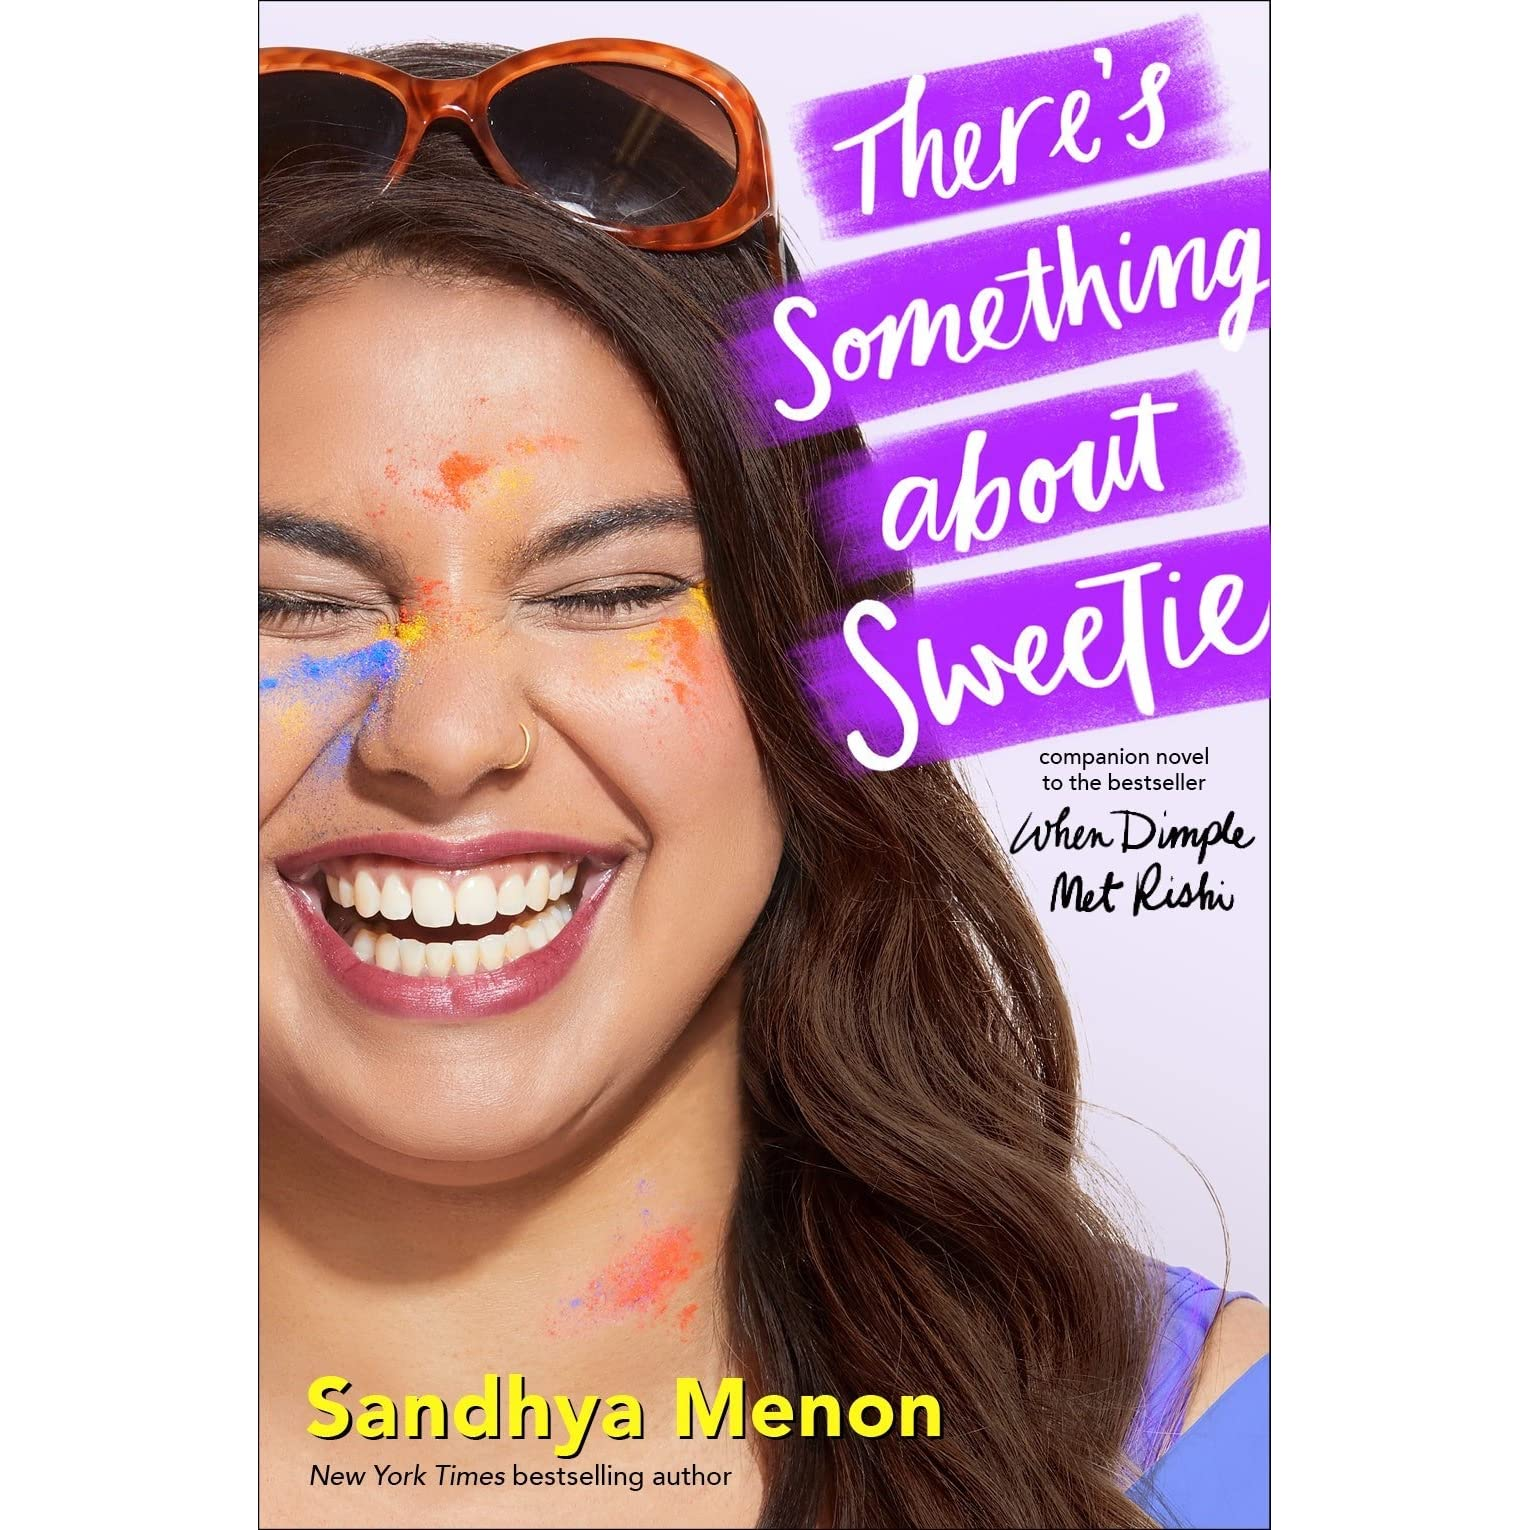 f940178b9cd There's Something About Sweetie by Sandhya Menon